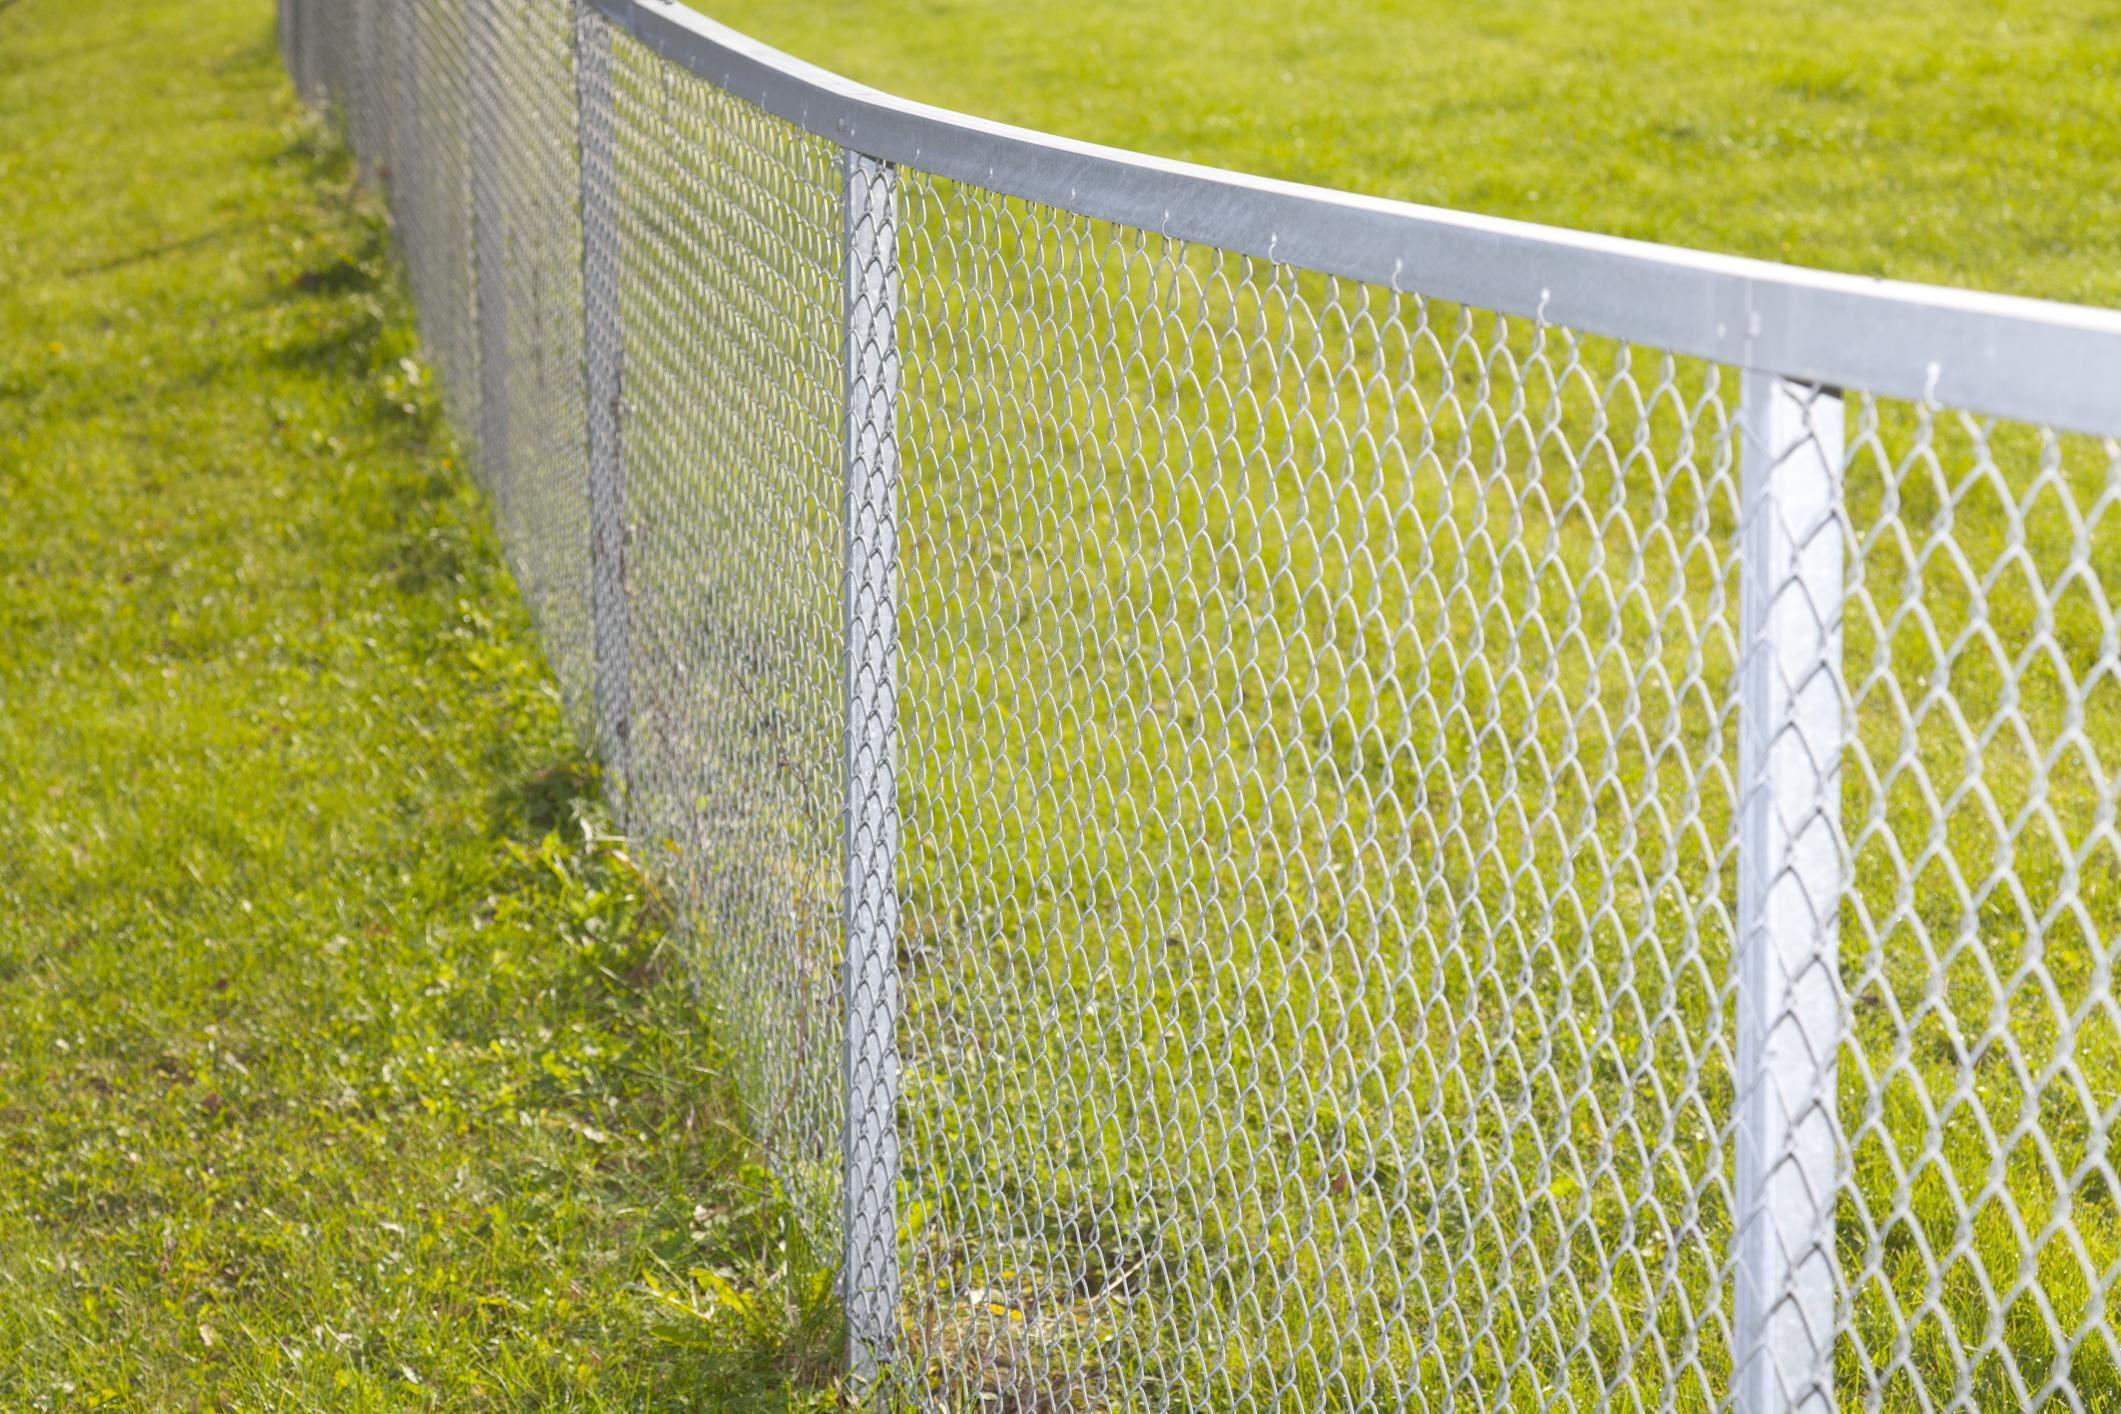 chain link fencing contractor job in rancho cucamonga ca